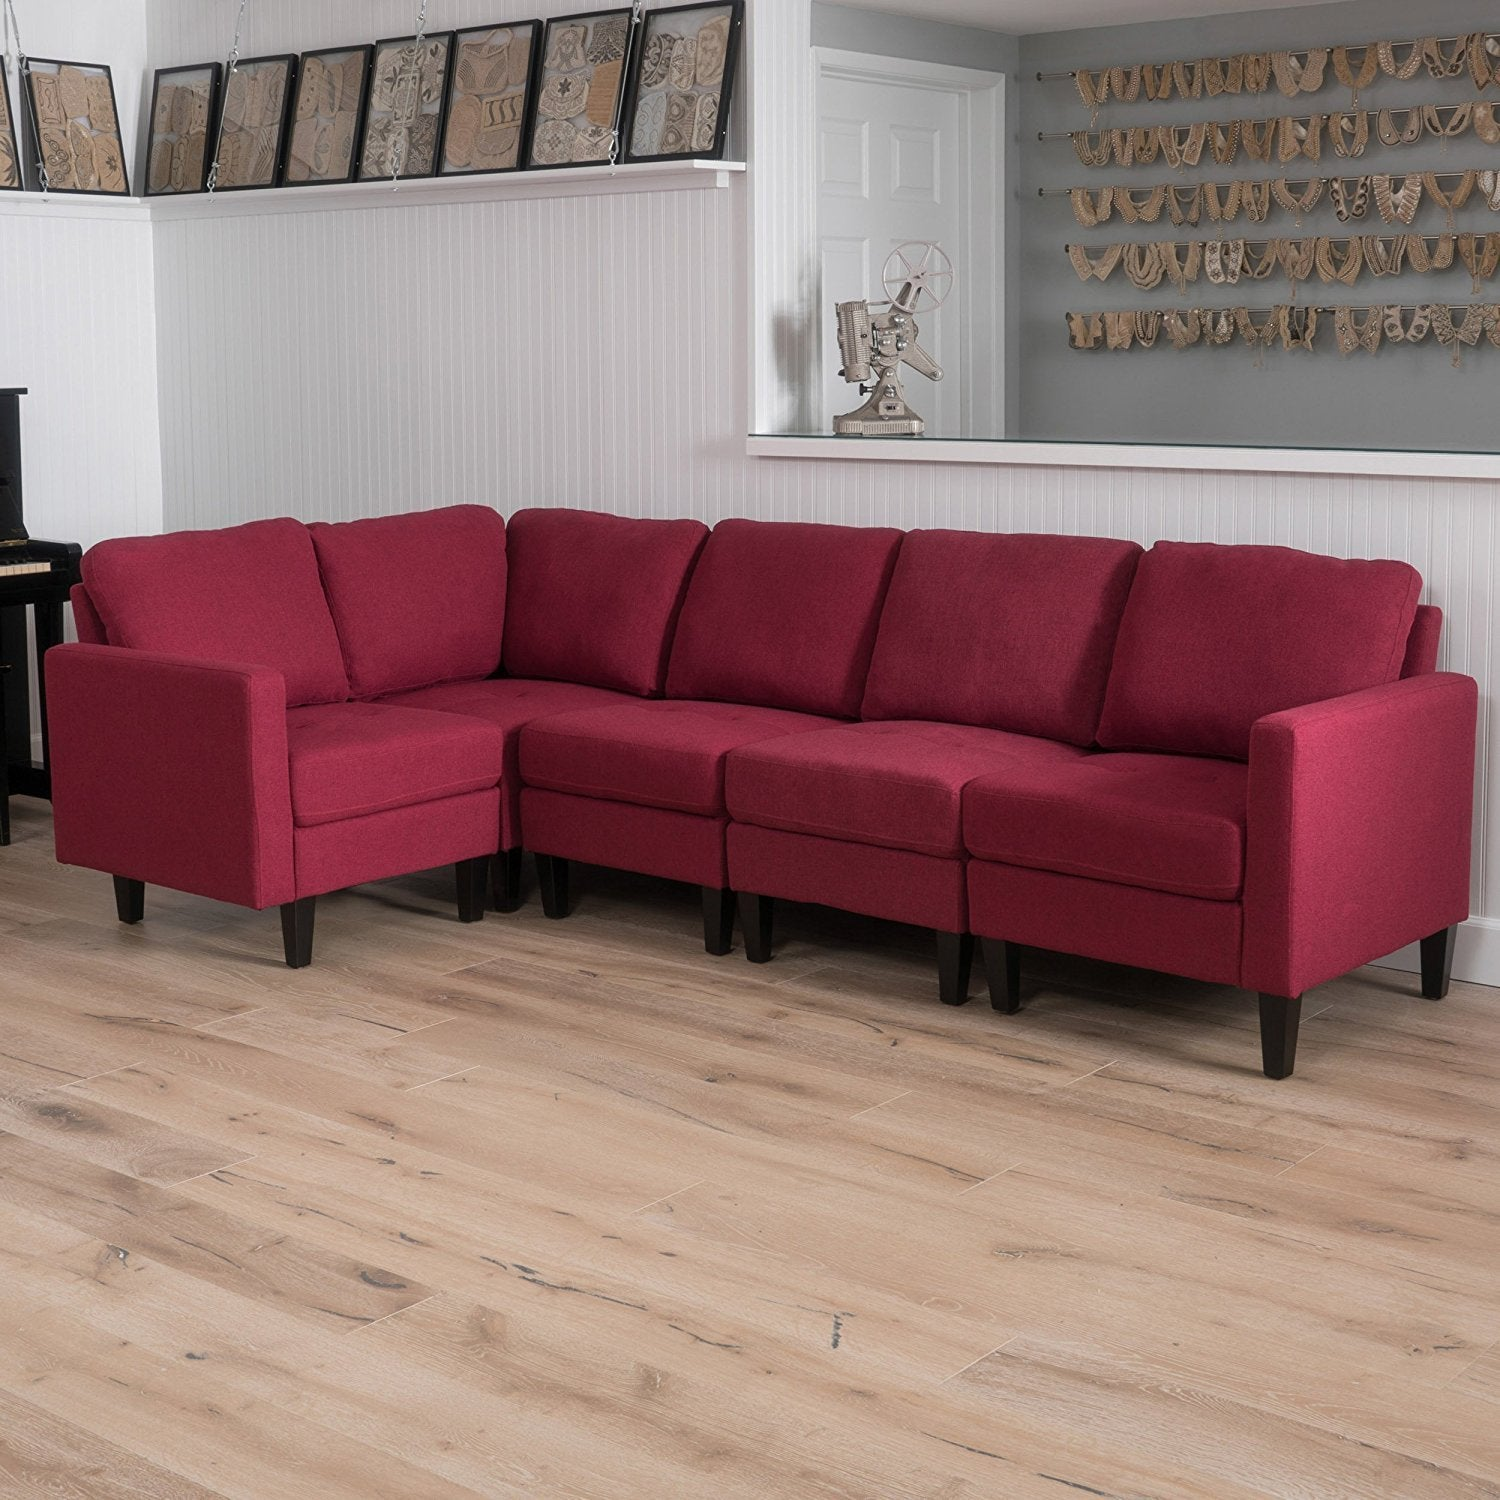 New Century® Deep Red Fabric Sectional Sofa